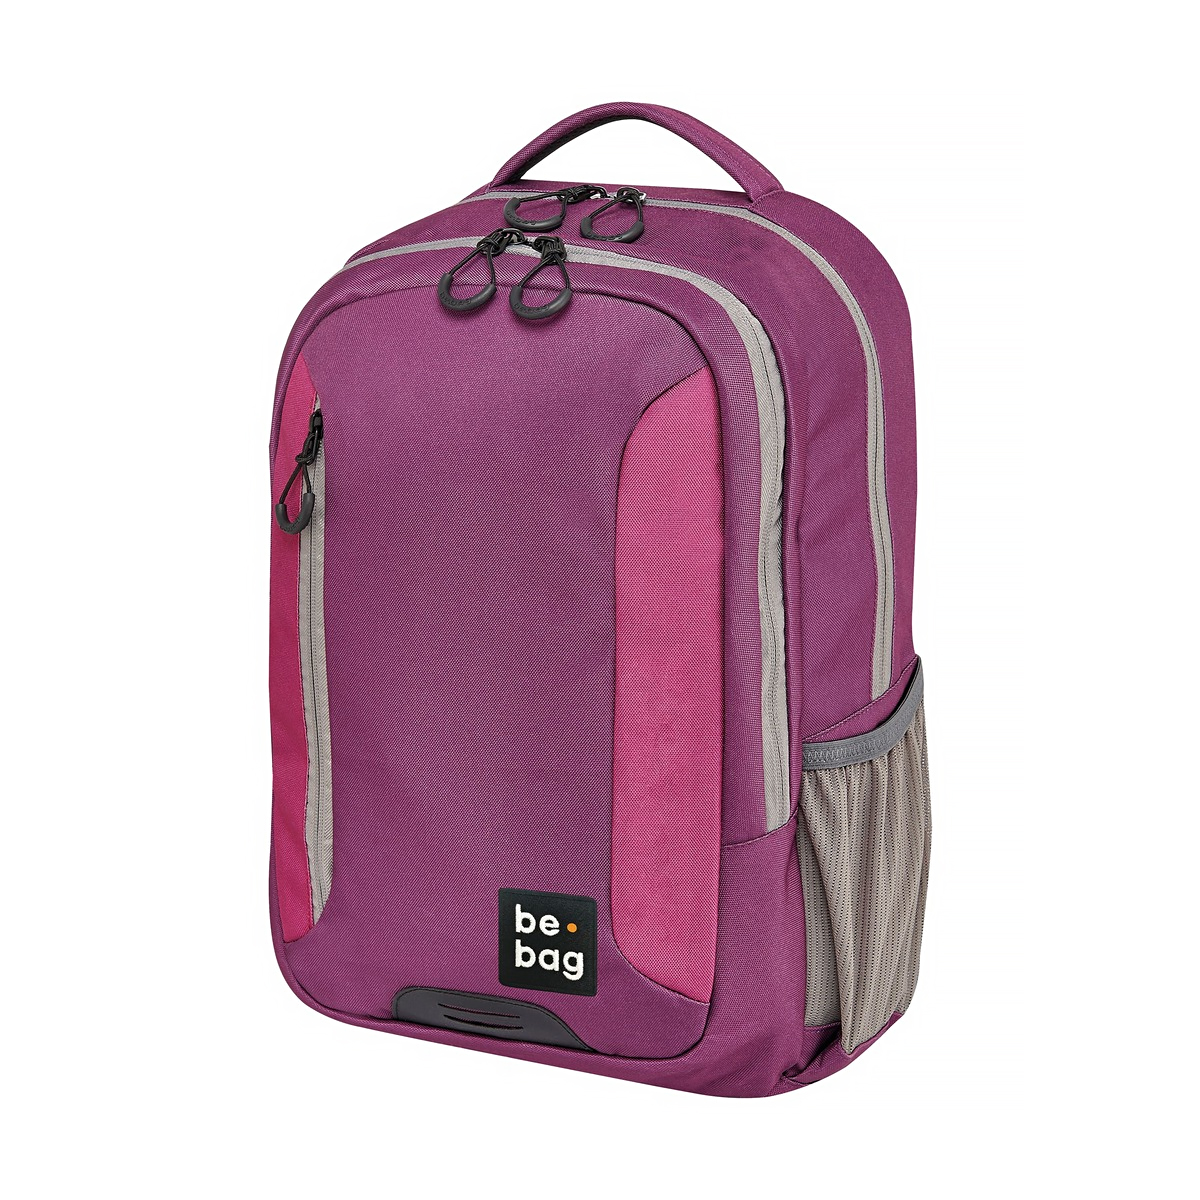 Rucsac Ergonomic Be.Bag, Be.Adventurer, Violet & Roz, Herlitz, 24800037